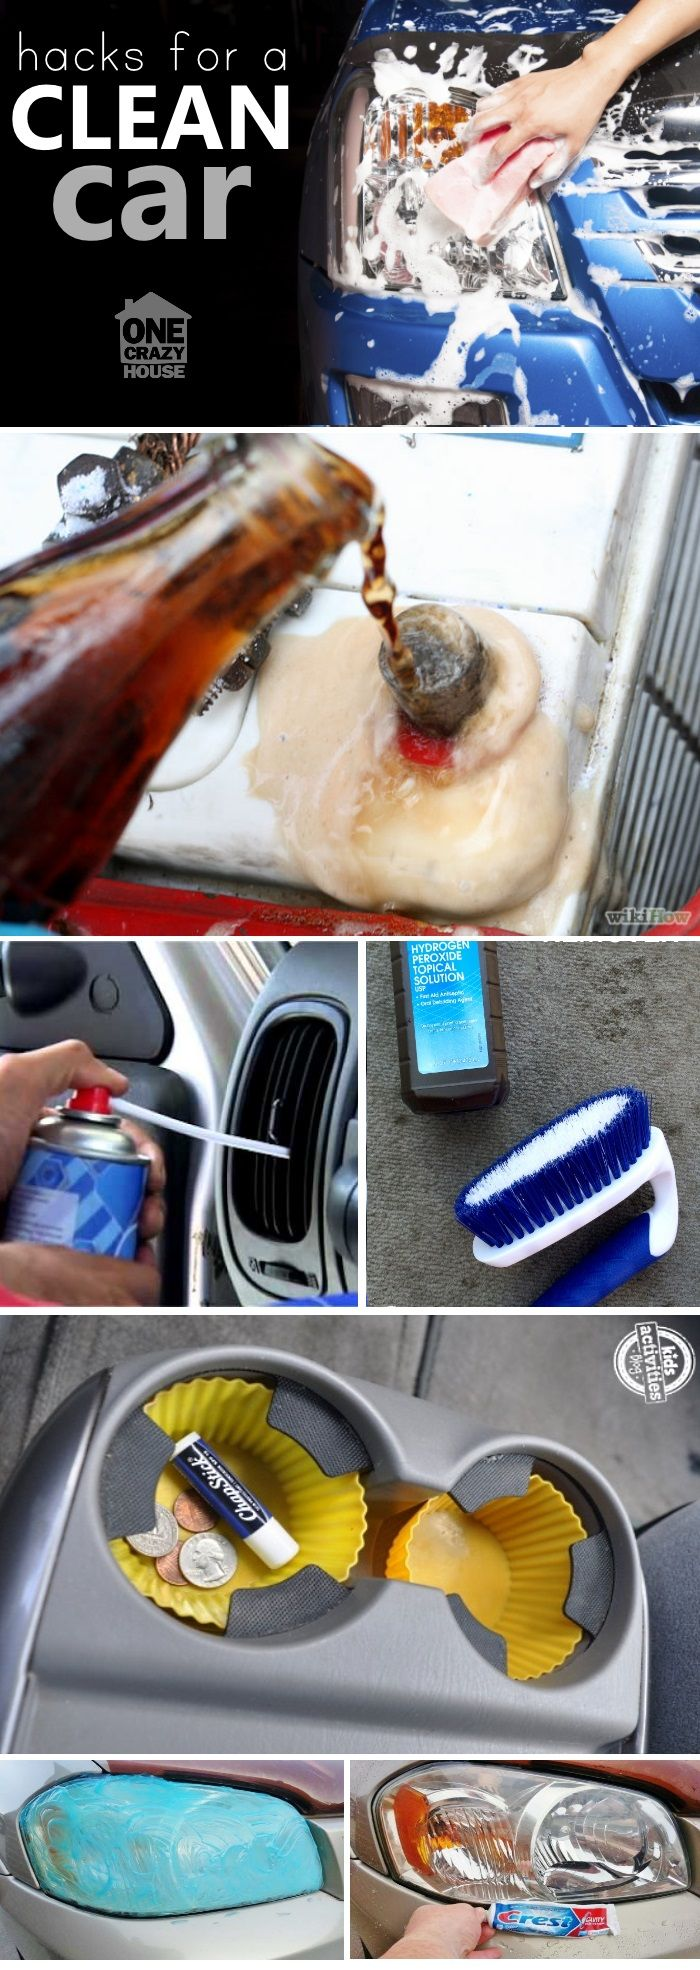 jewellery online Genius Car Cleaning Tips   One Crazy House